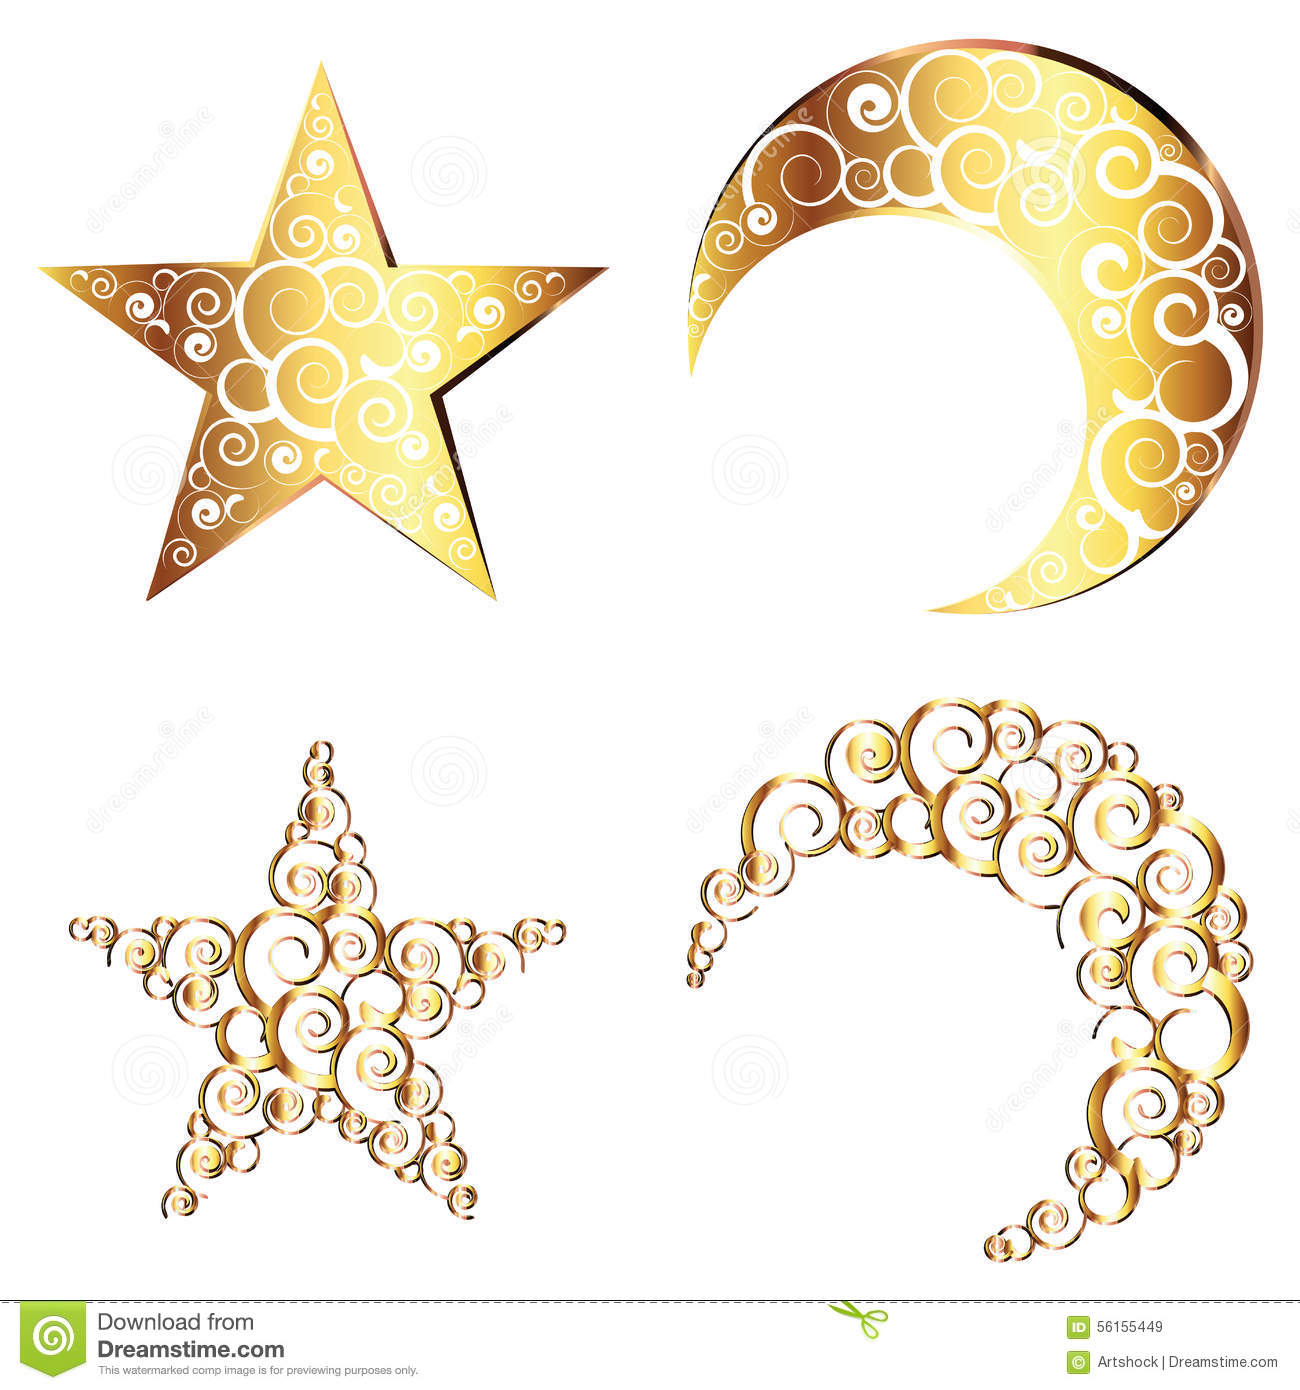 Crescent moon and star symbols stock vector illustration of crescent moon and star symbols biocorpaavc Gallery